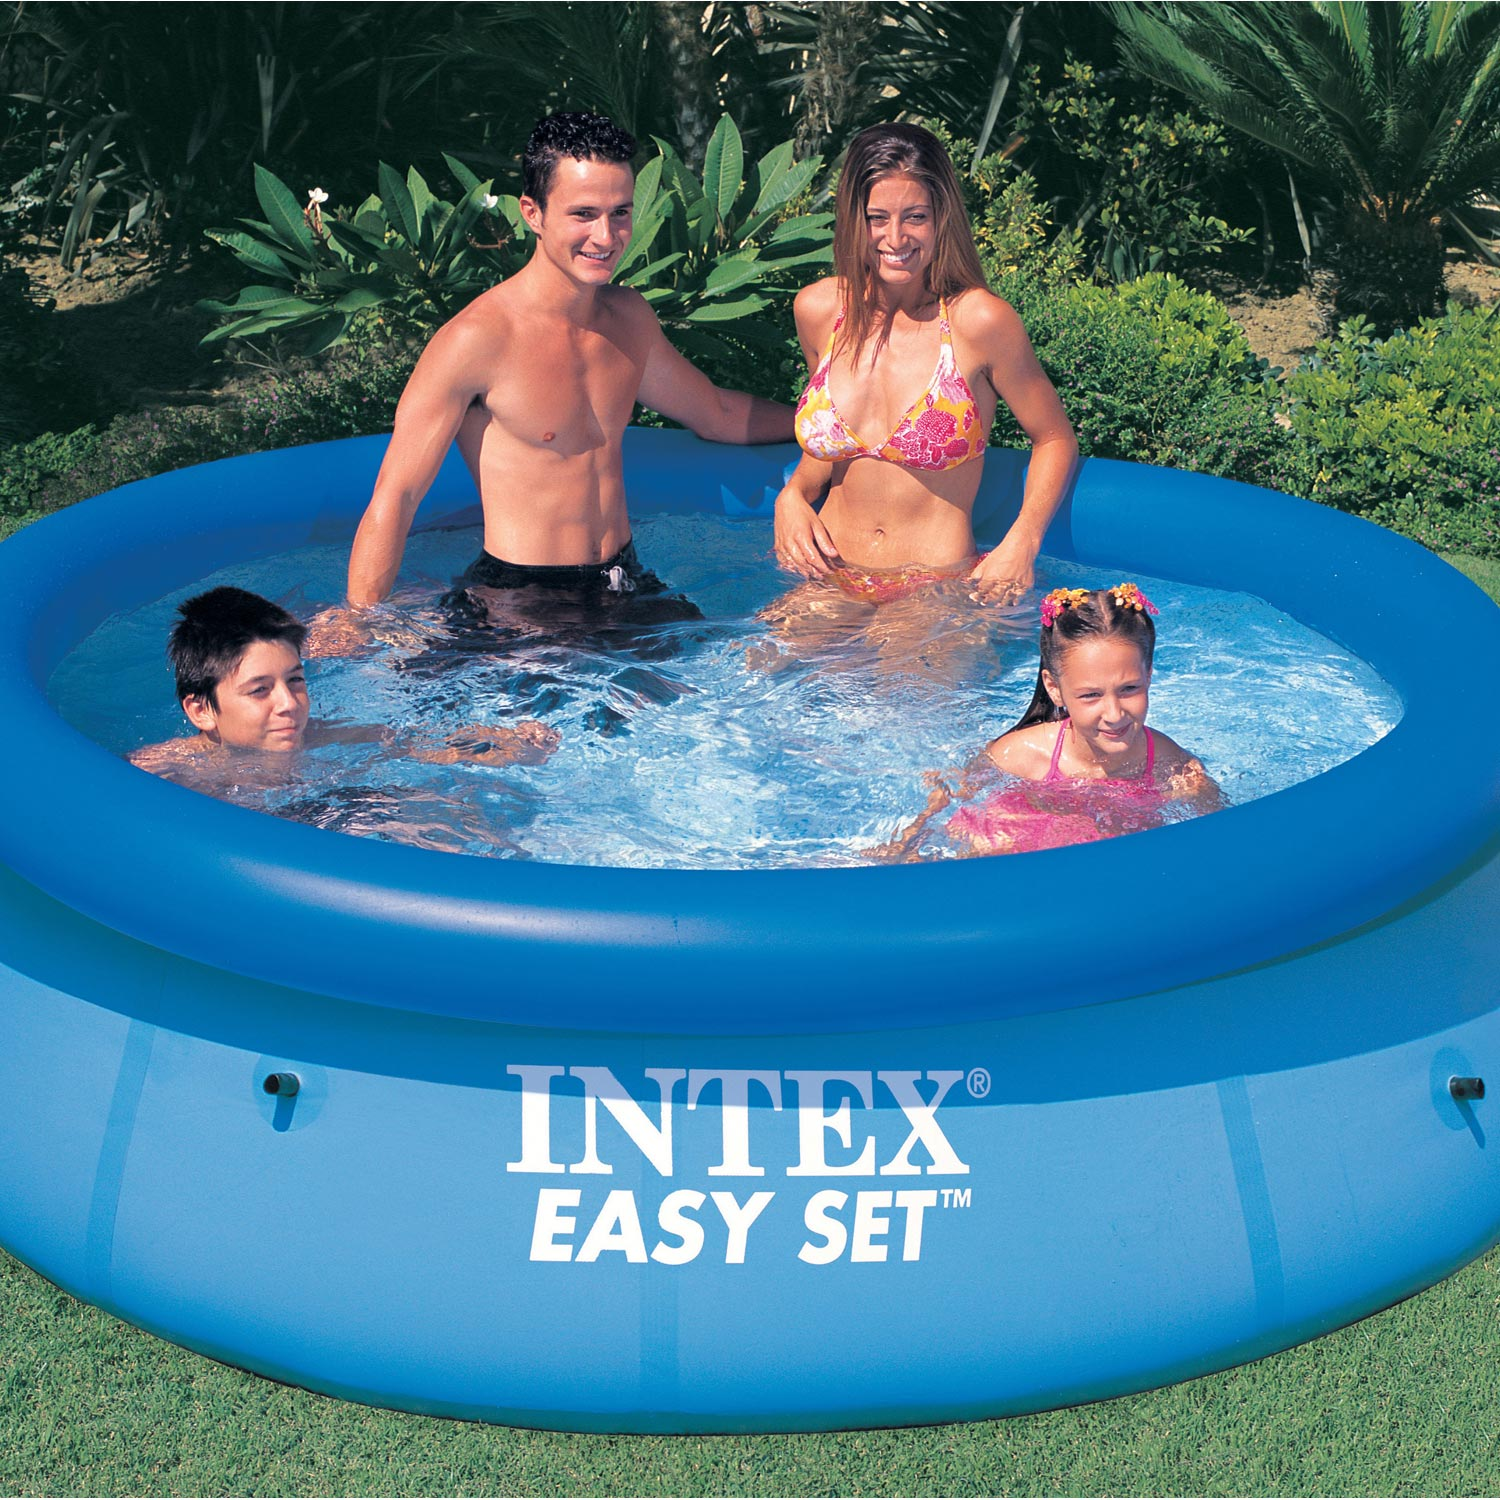 Piscine hors sol gonflable easy set clearview intex ronde for Piscine hors sol intex